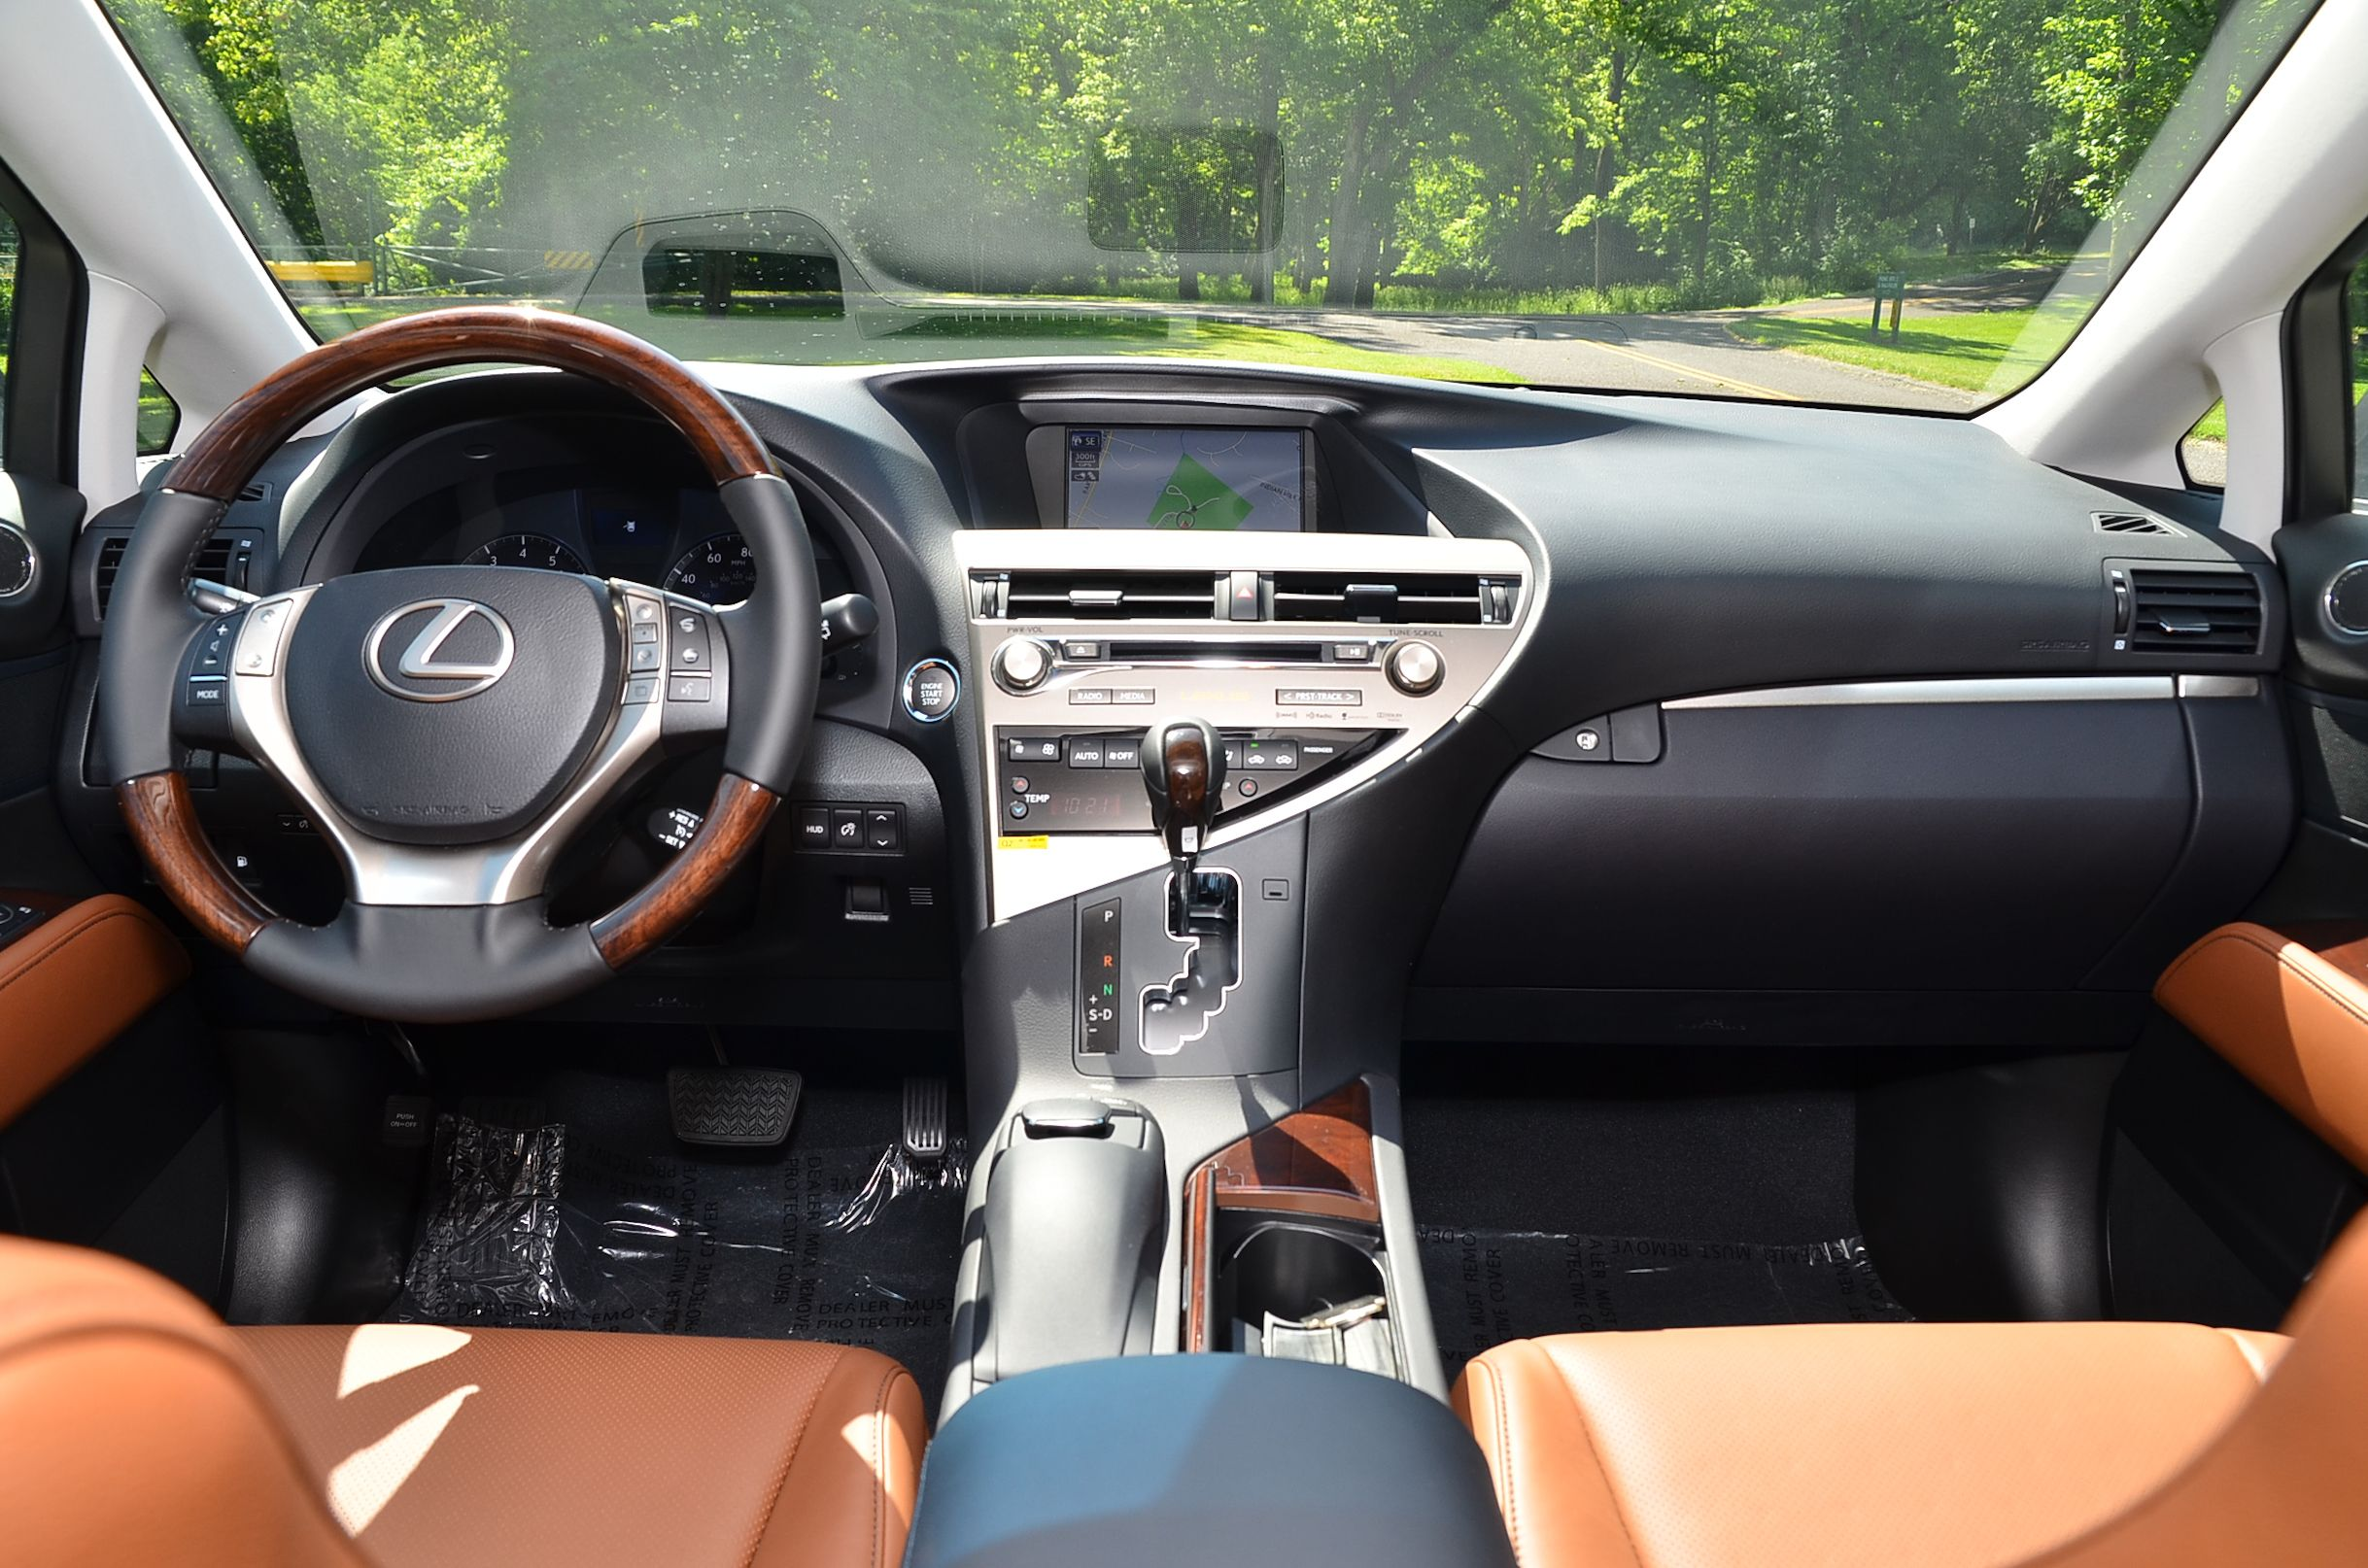 Take a look at this stunning new 2013 lexus rx 350 in new nebula gray pearl